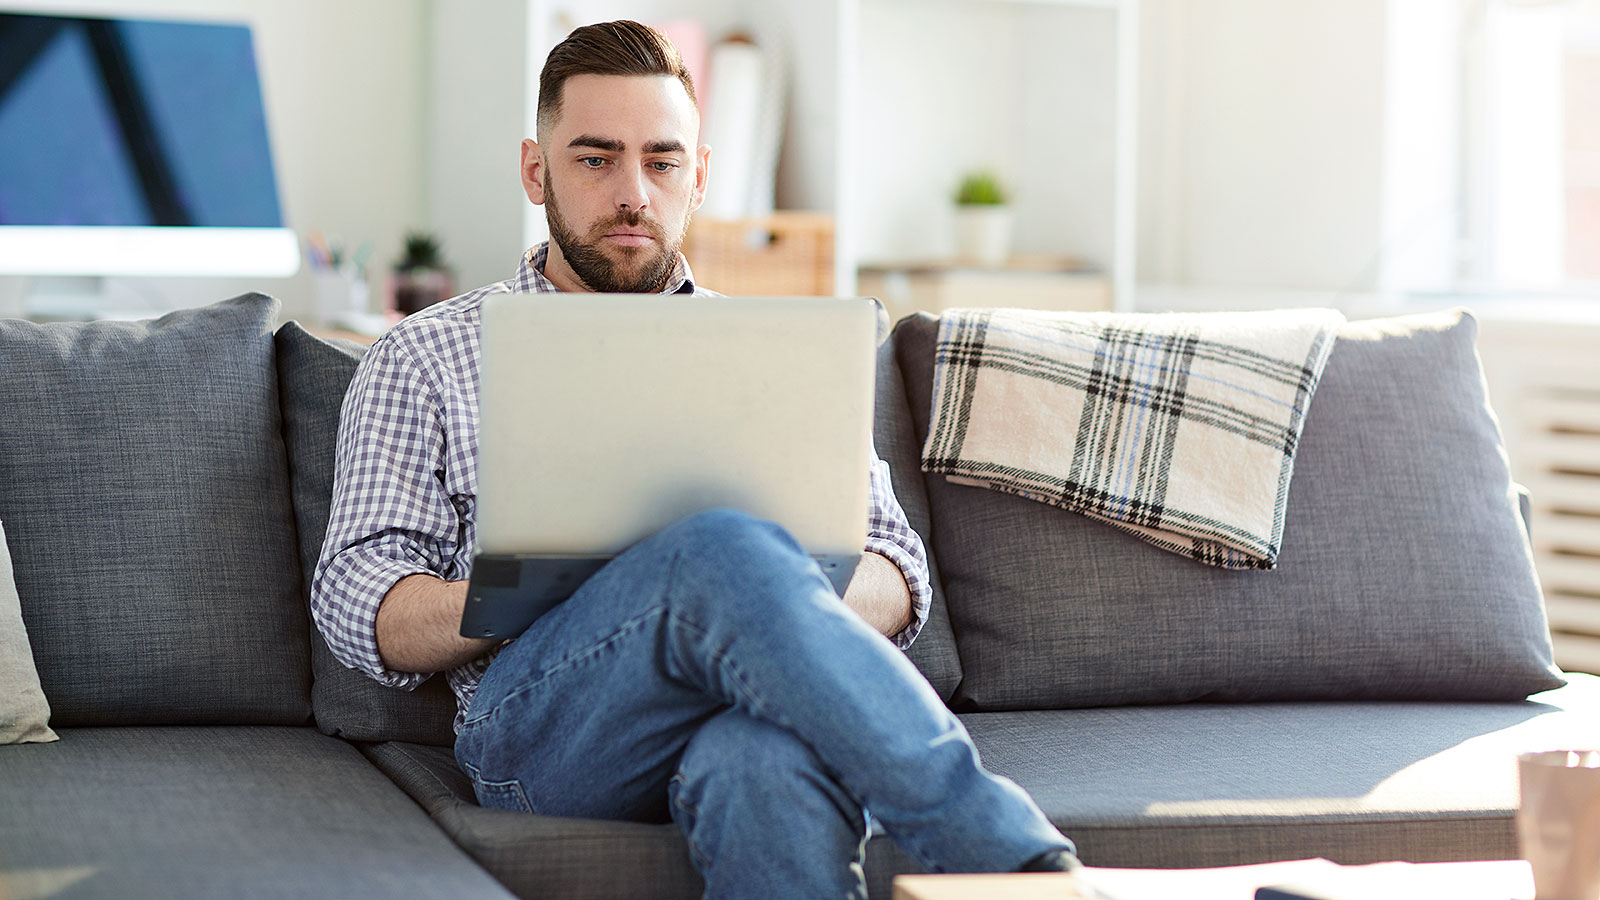 Should you work from home or at the office? Science has the answer